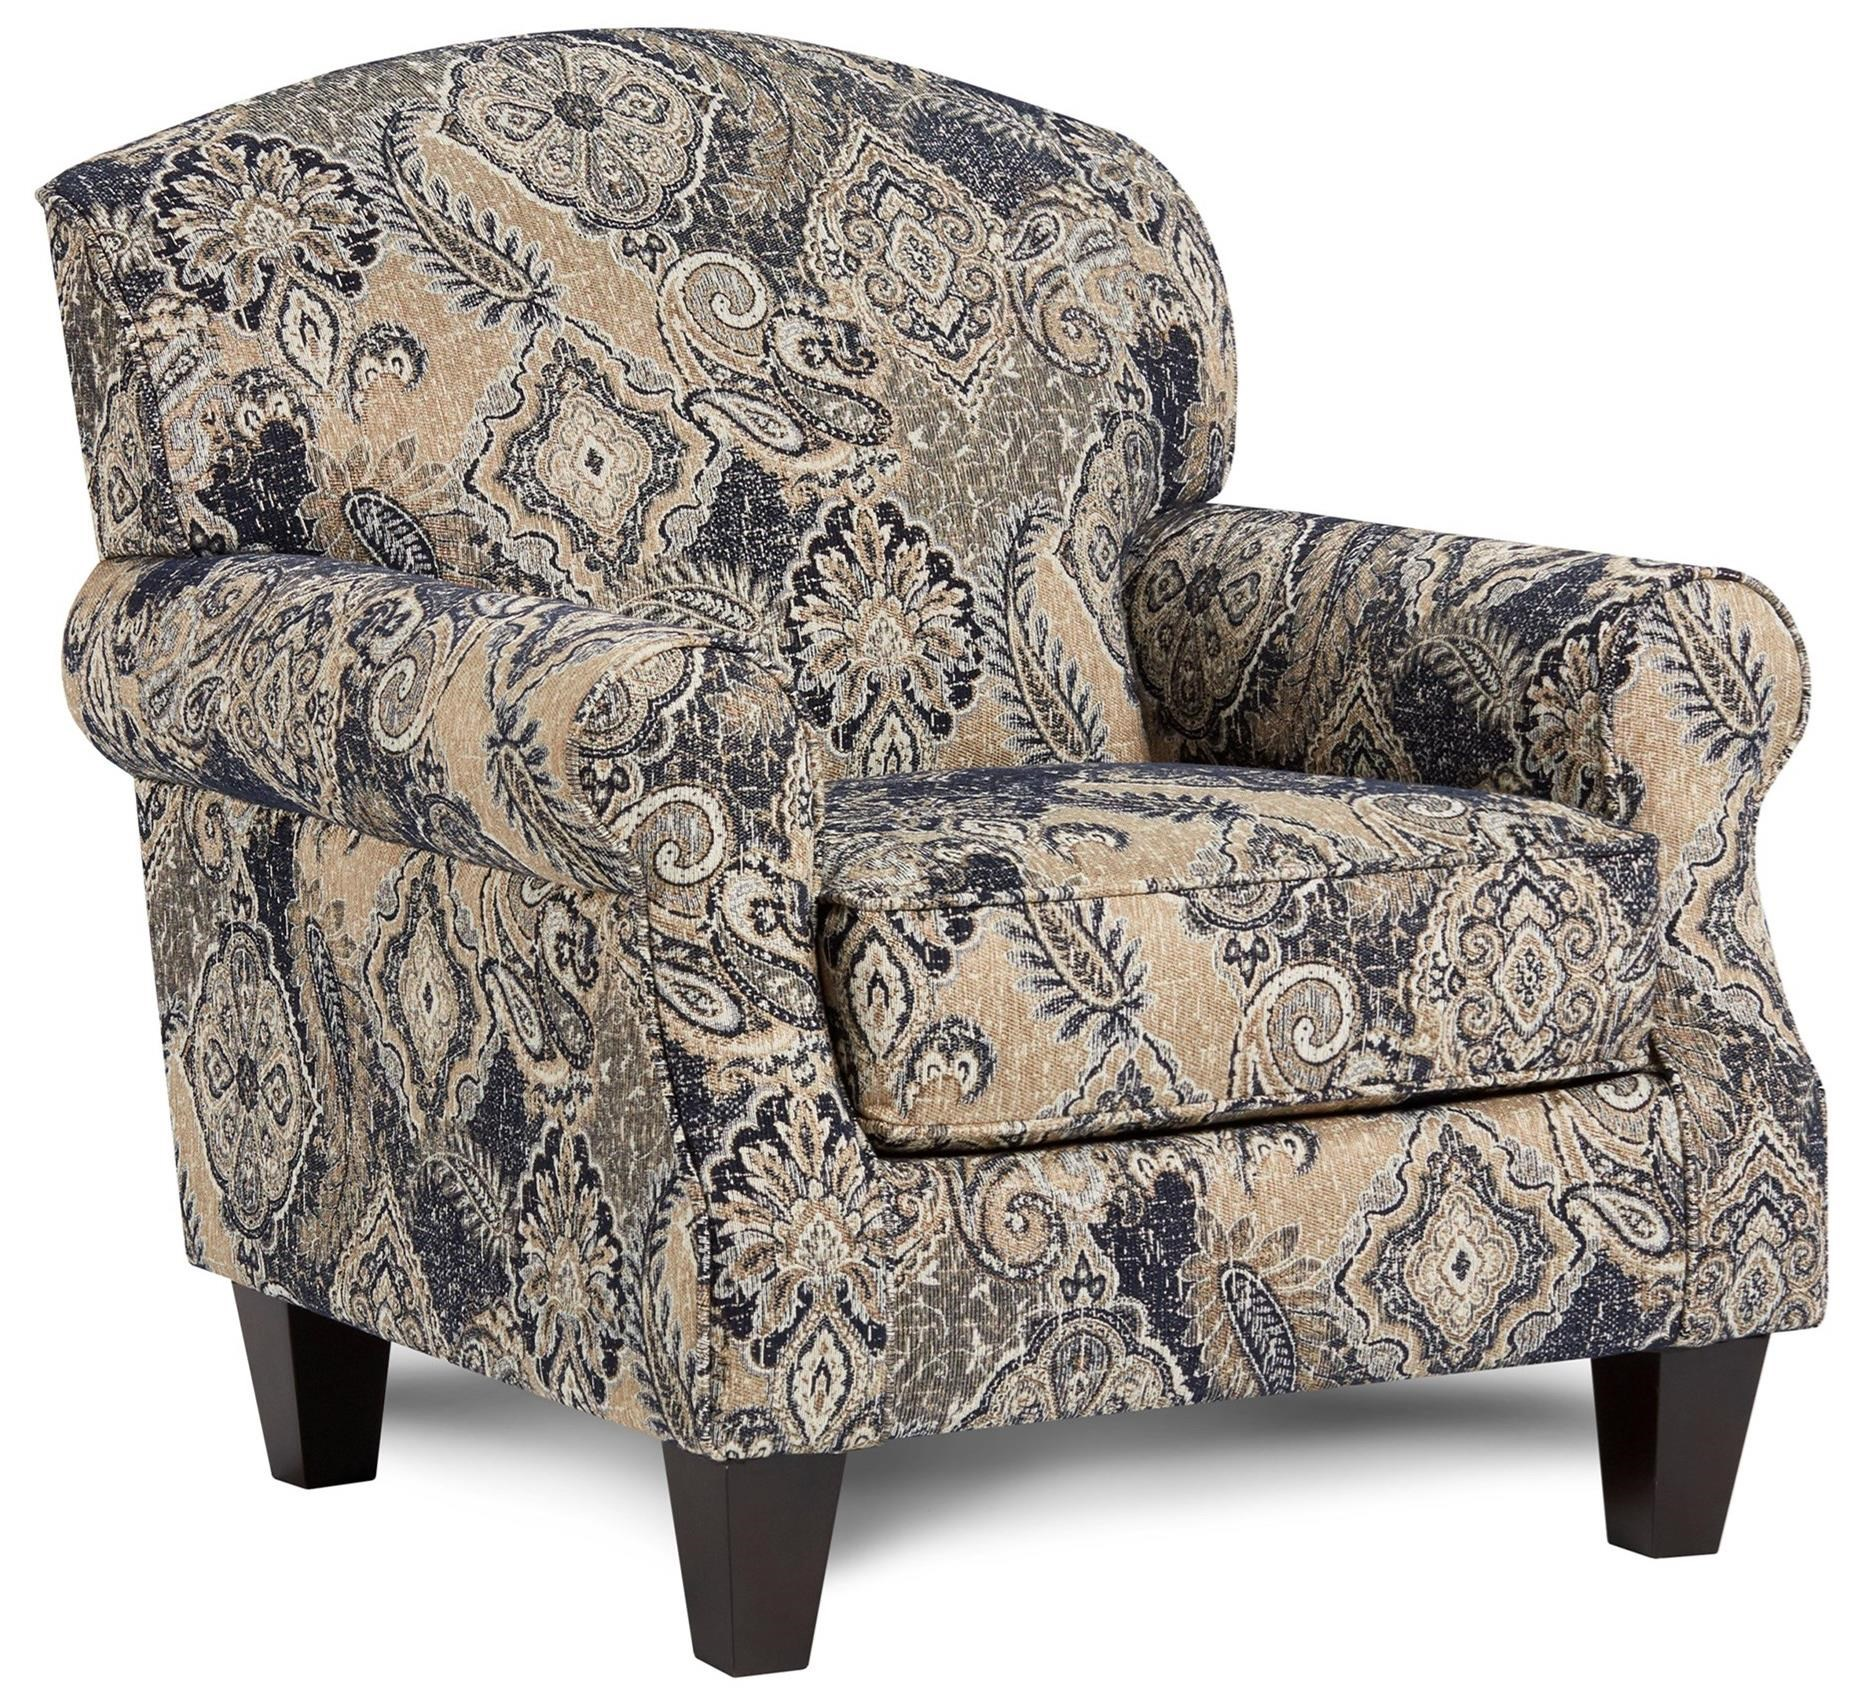 532 Accent Chair by Fusion Furniture at Wilson's Furniture